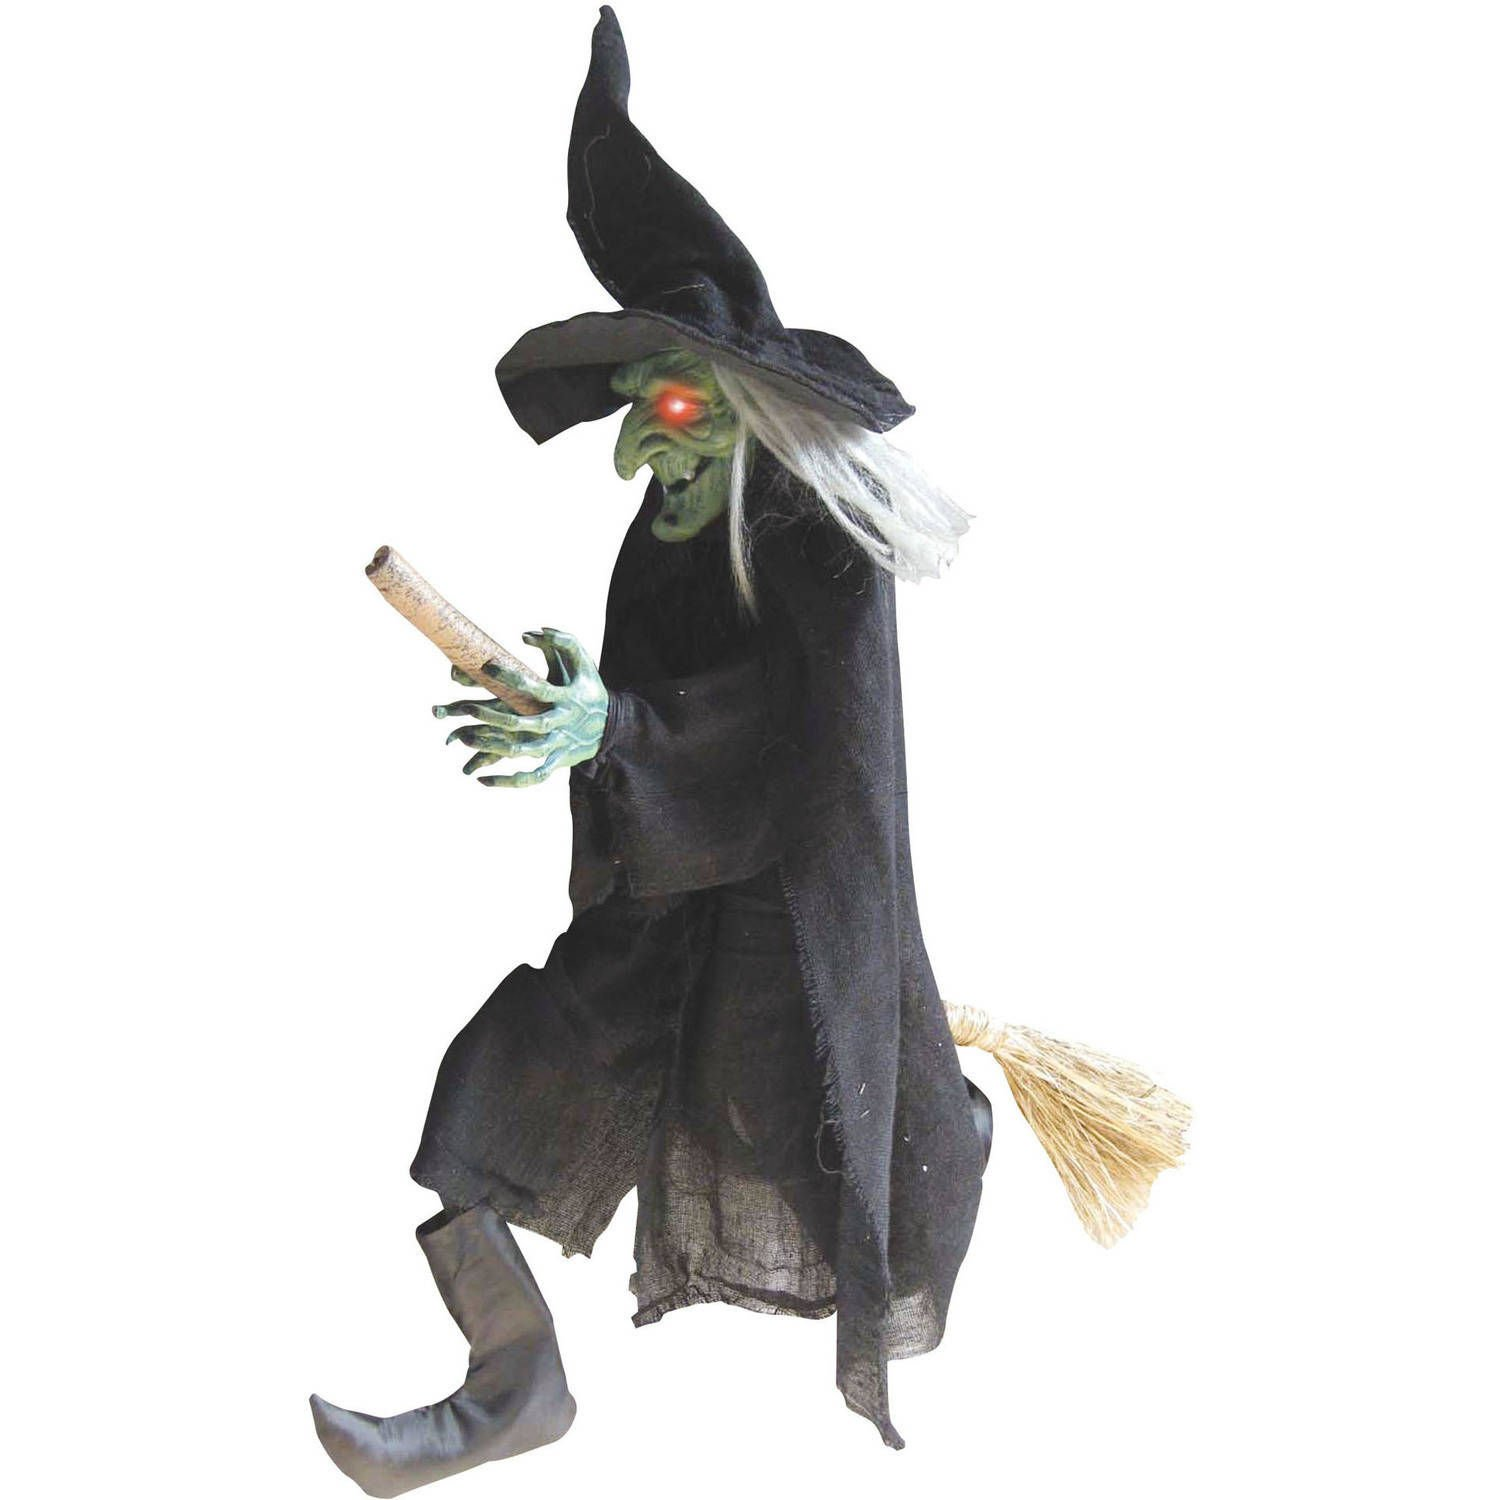 Light Up Animated Flying Witch Halloween Decorations - Flashing Eyes, Kicking Legs and Spooky Sounds - 3 ft tall